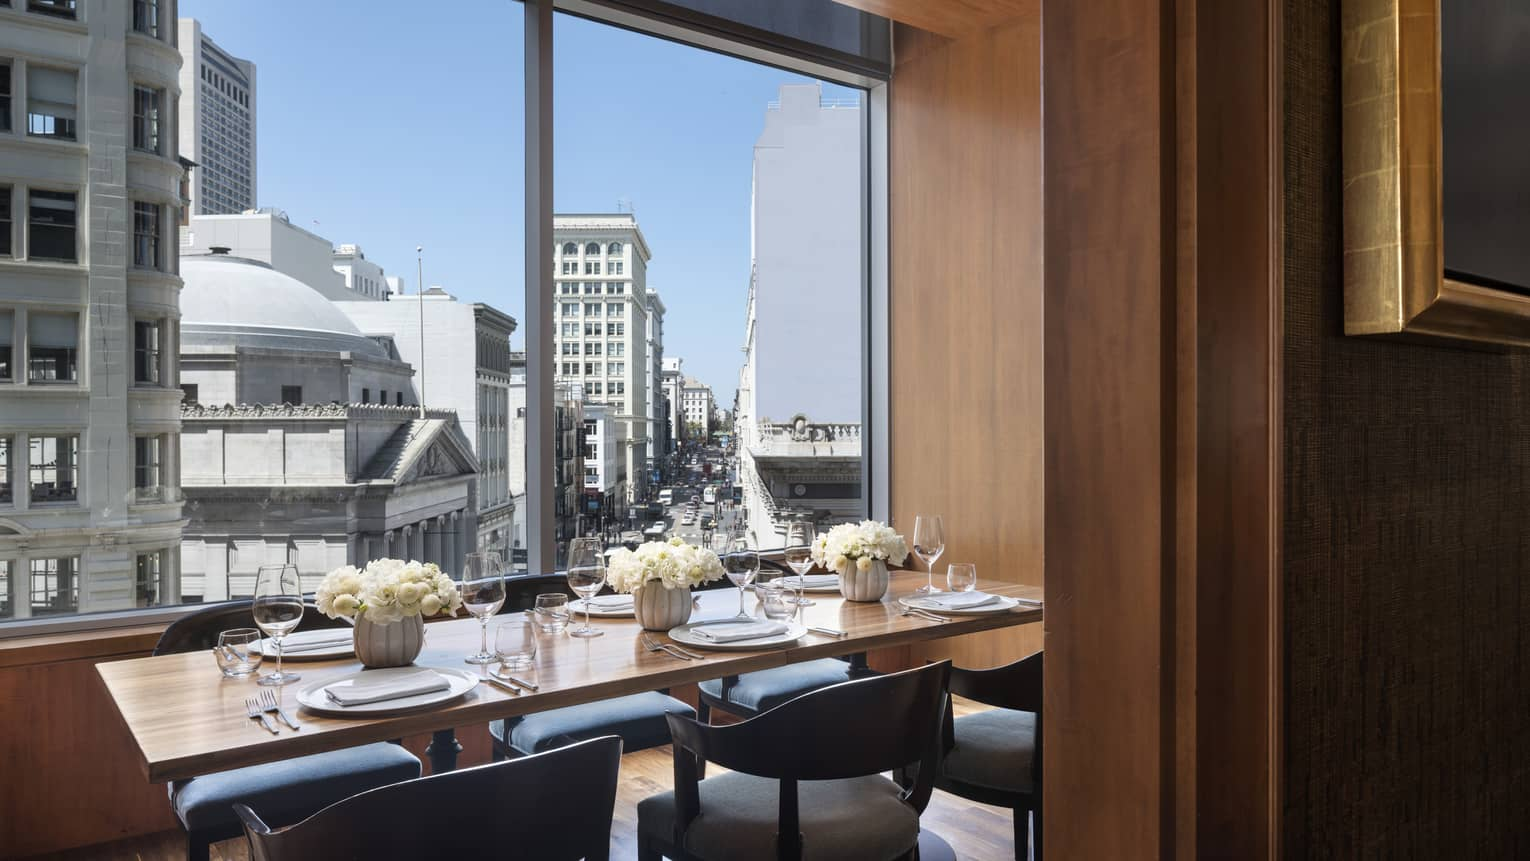 Private dining table with fresh white flowers by sunny window with San Francisco city view